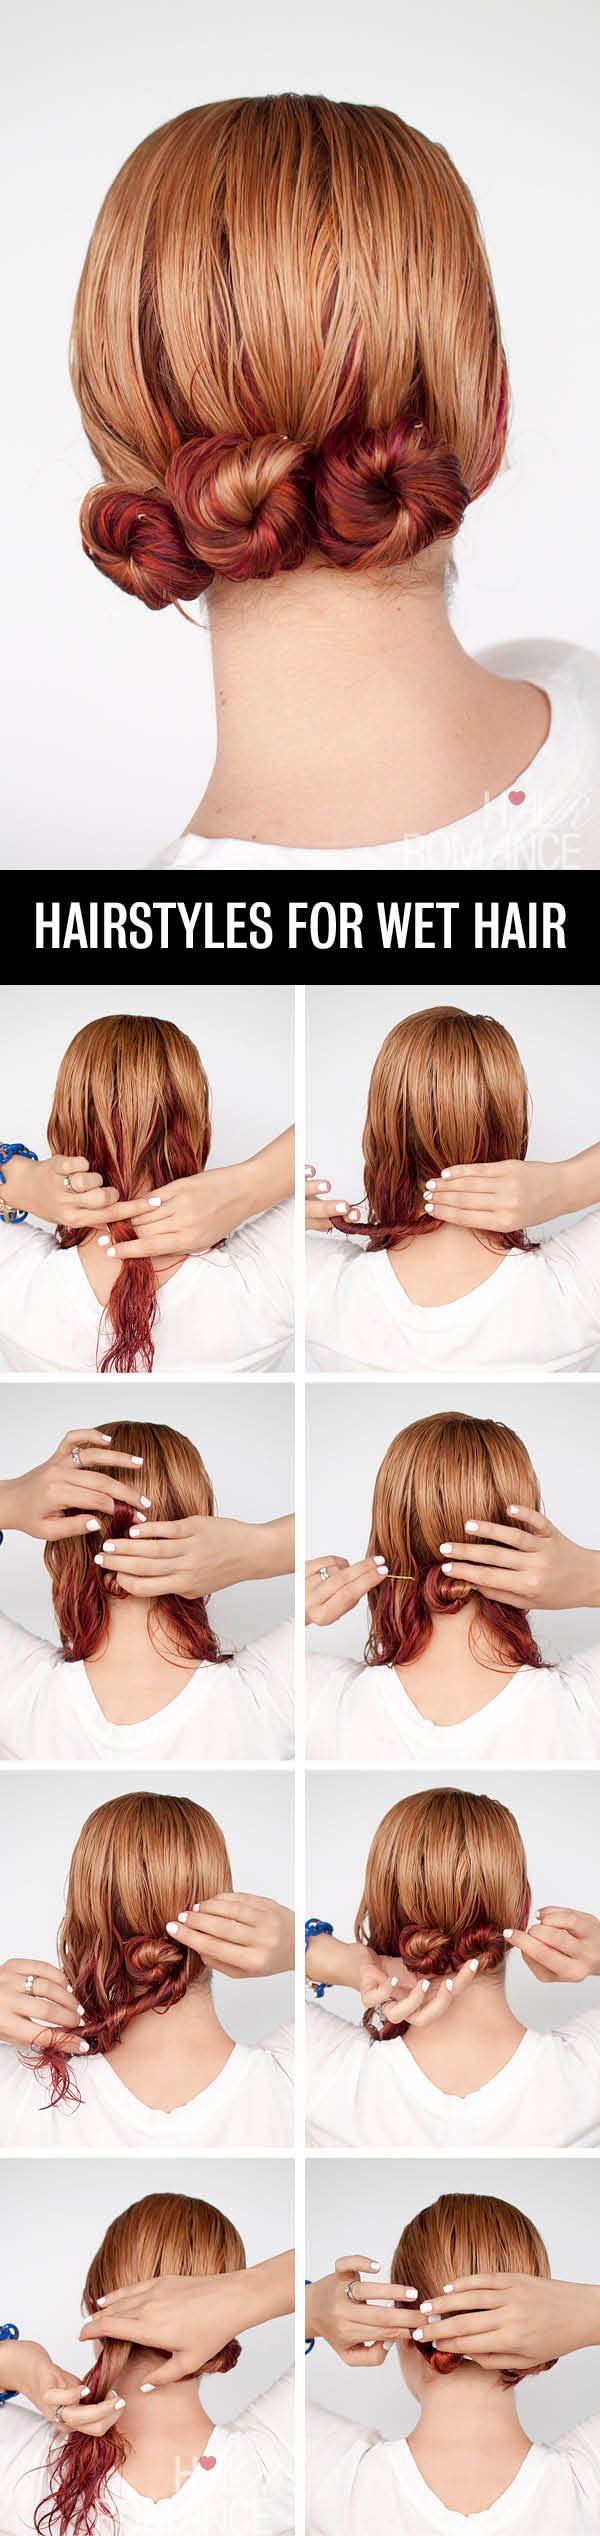 Lower updo hairstyle tutorial for wet hair